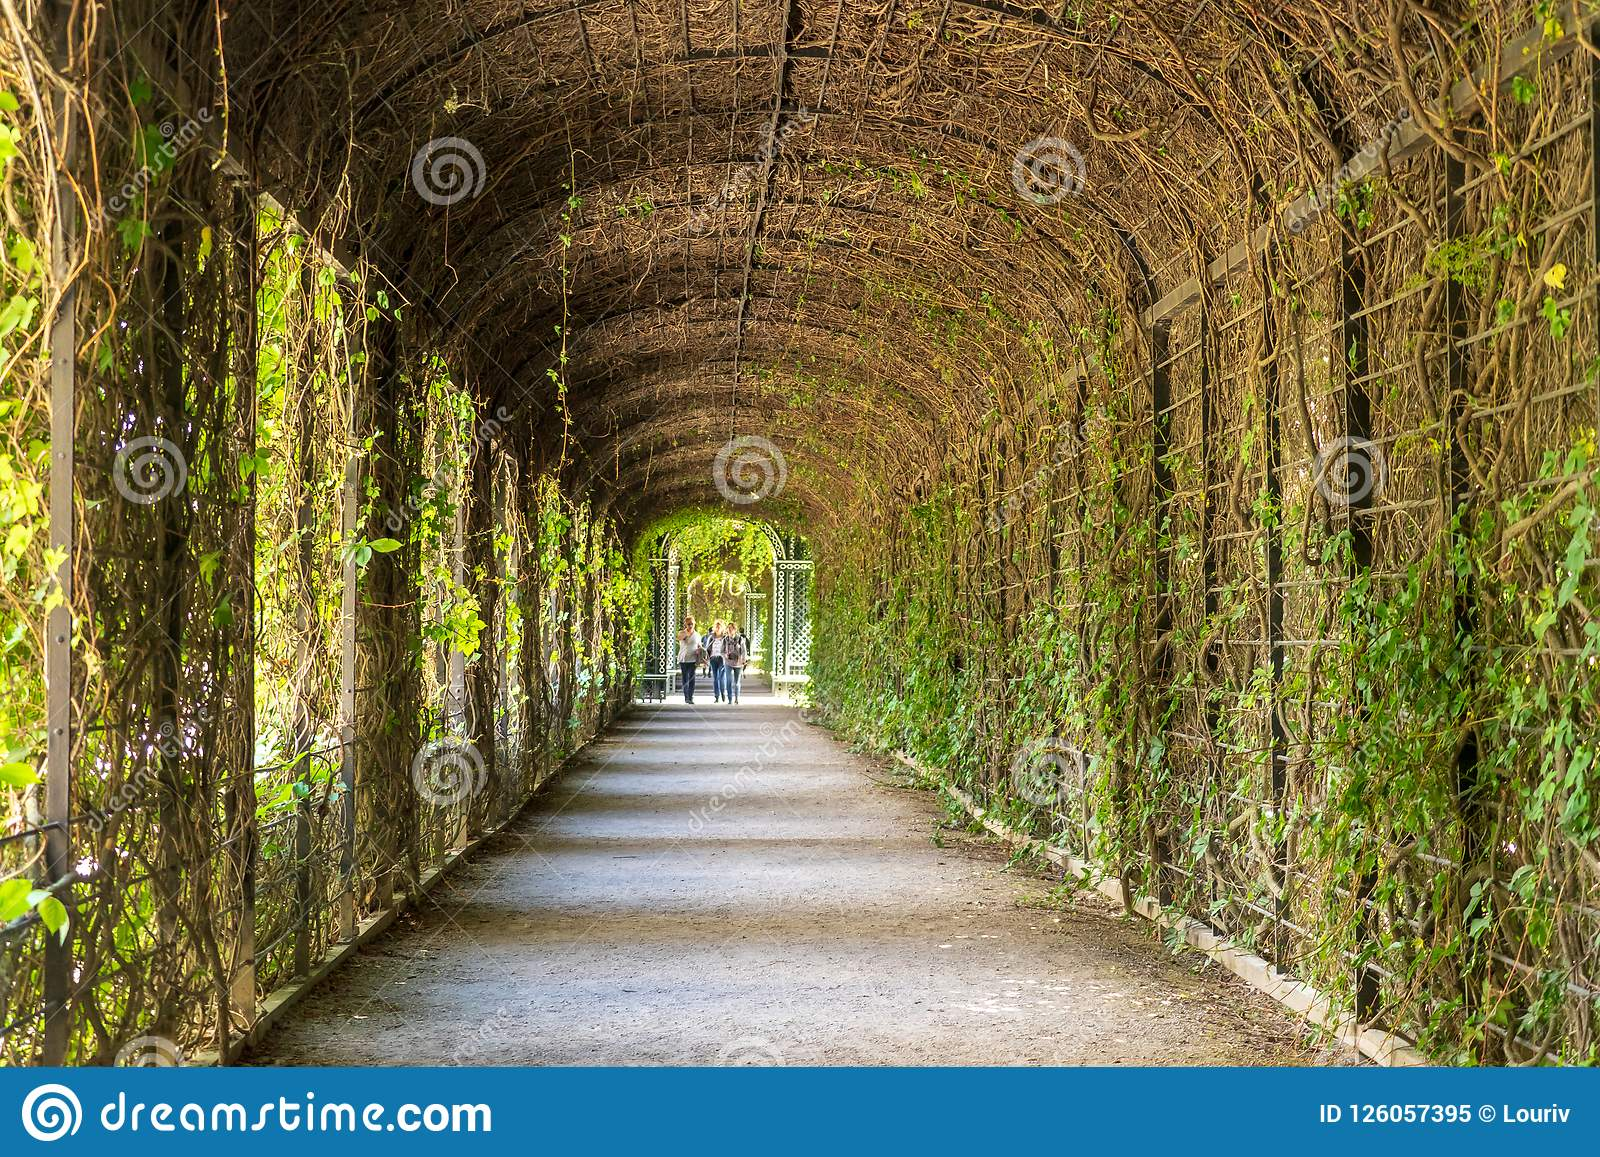 Garden Management In Schonbrunn Palace Editorial Image - Image of ...